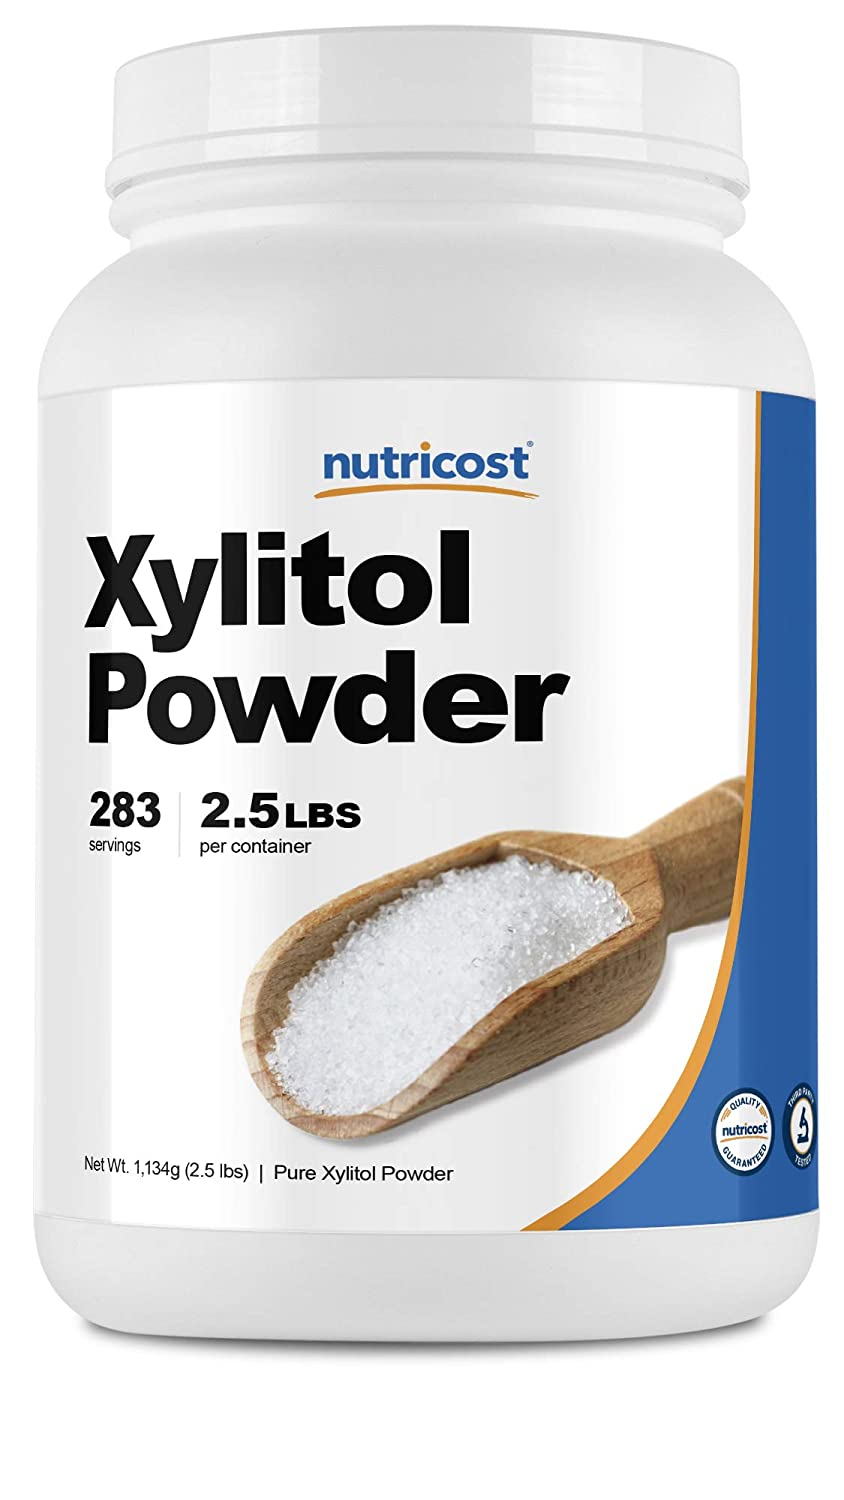 Nutricost Pure Xylitol Granulated Powder 2.5 Pounds - High Quality, Granulated Crystals